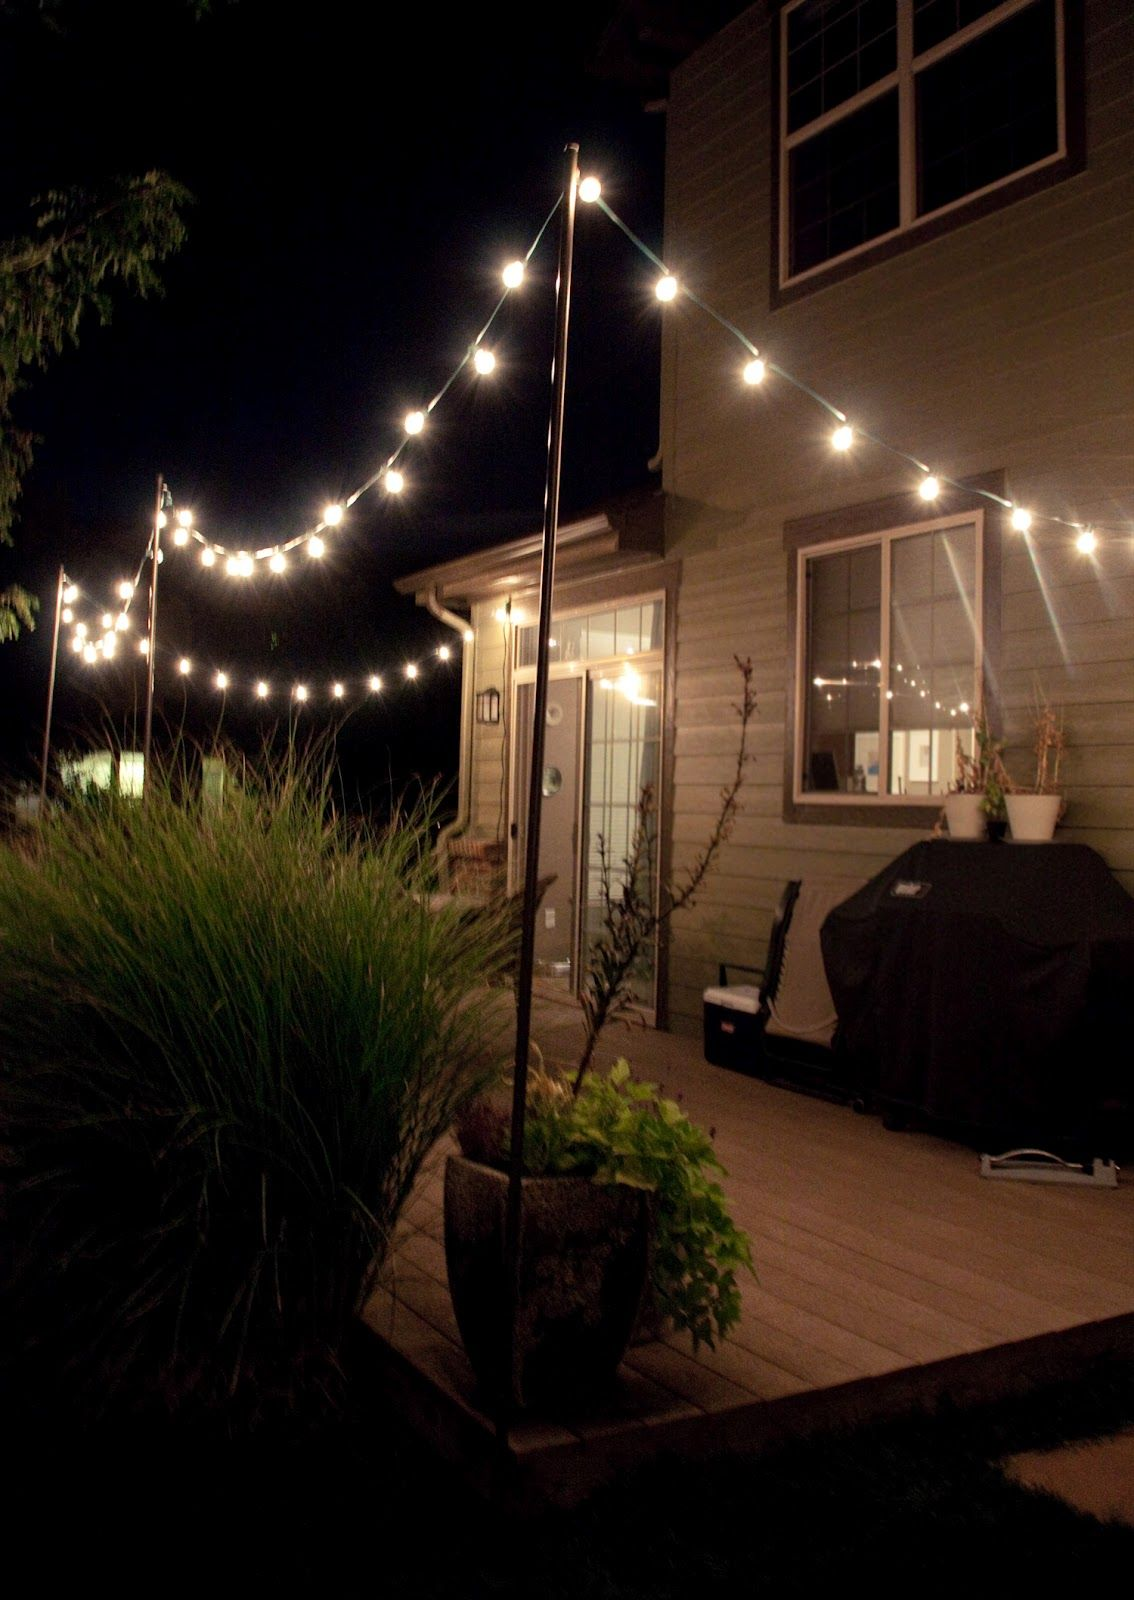 outdoor strand lighting. Google Image Result For Http://1.bp.blogspot.com/-x_bvcq5DzFc/UE0ayFeij0I/AAAAAAAAA_o/r-5VwDCewIg/s1600/DIYOutdoorStringLights17.jpg Outdoor Strand Lighting O